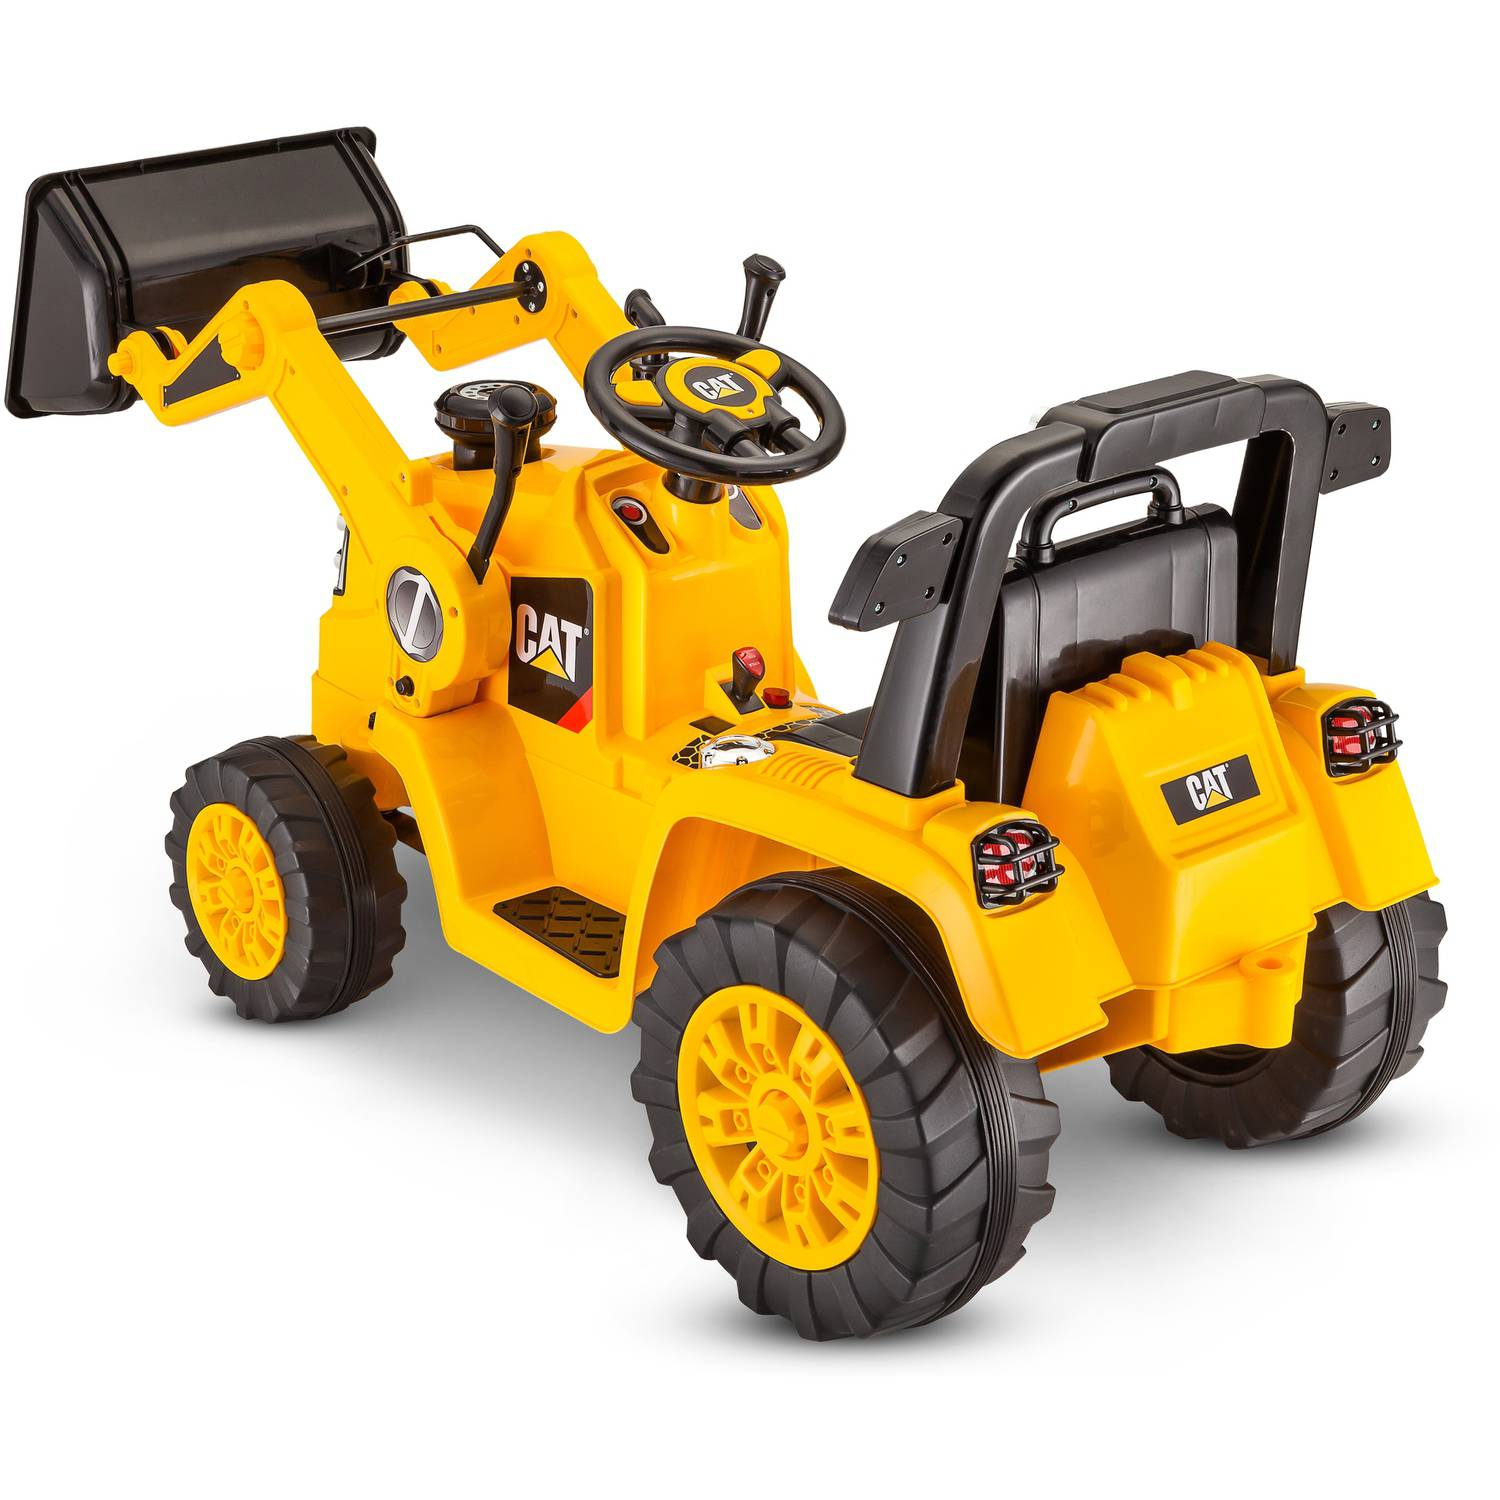 Kidtrax CAT Bulldozer Tractor 6V Battery Powered Ride Yellow